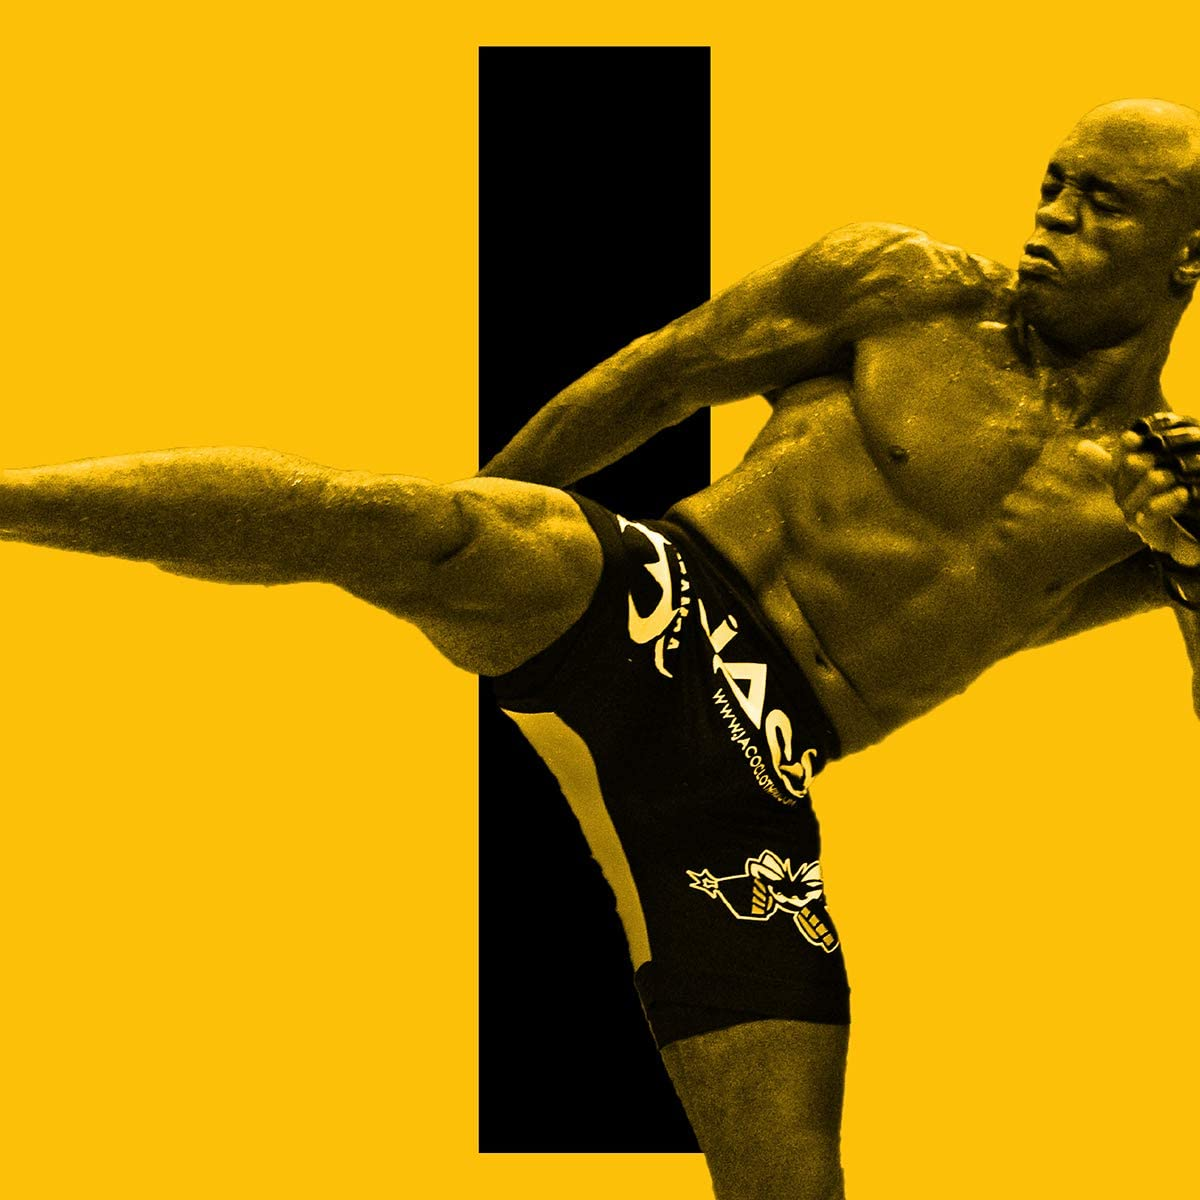 Anderson Silva Poster Print, MMA Fighter, Canvas Art, Real Fighter, UFC, Anderson Silva Decor, ArtWork, Posters for Wall SIZE 24 x 32 Inches